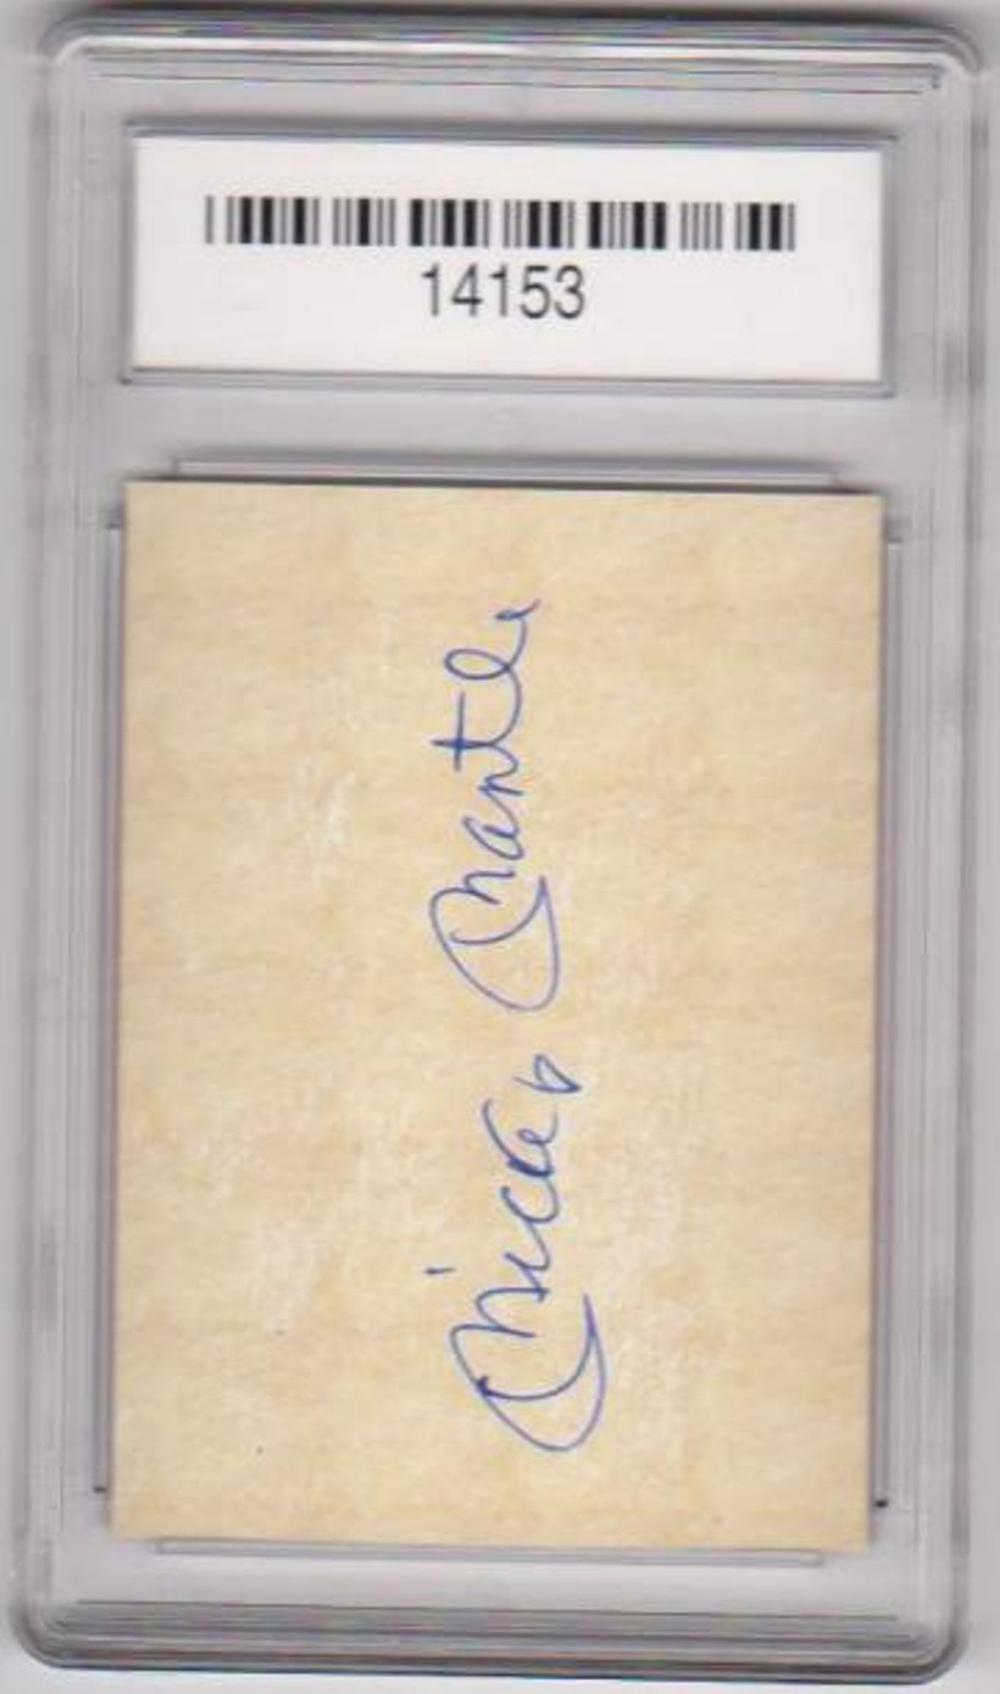 Lot 1: Graded Gem Mint 10 Mickey Mantle Coca-Cola Advertising Promo Card